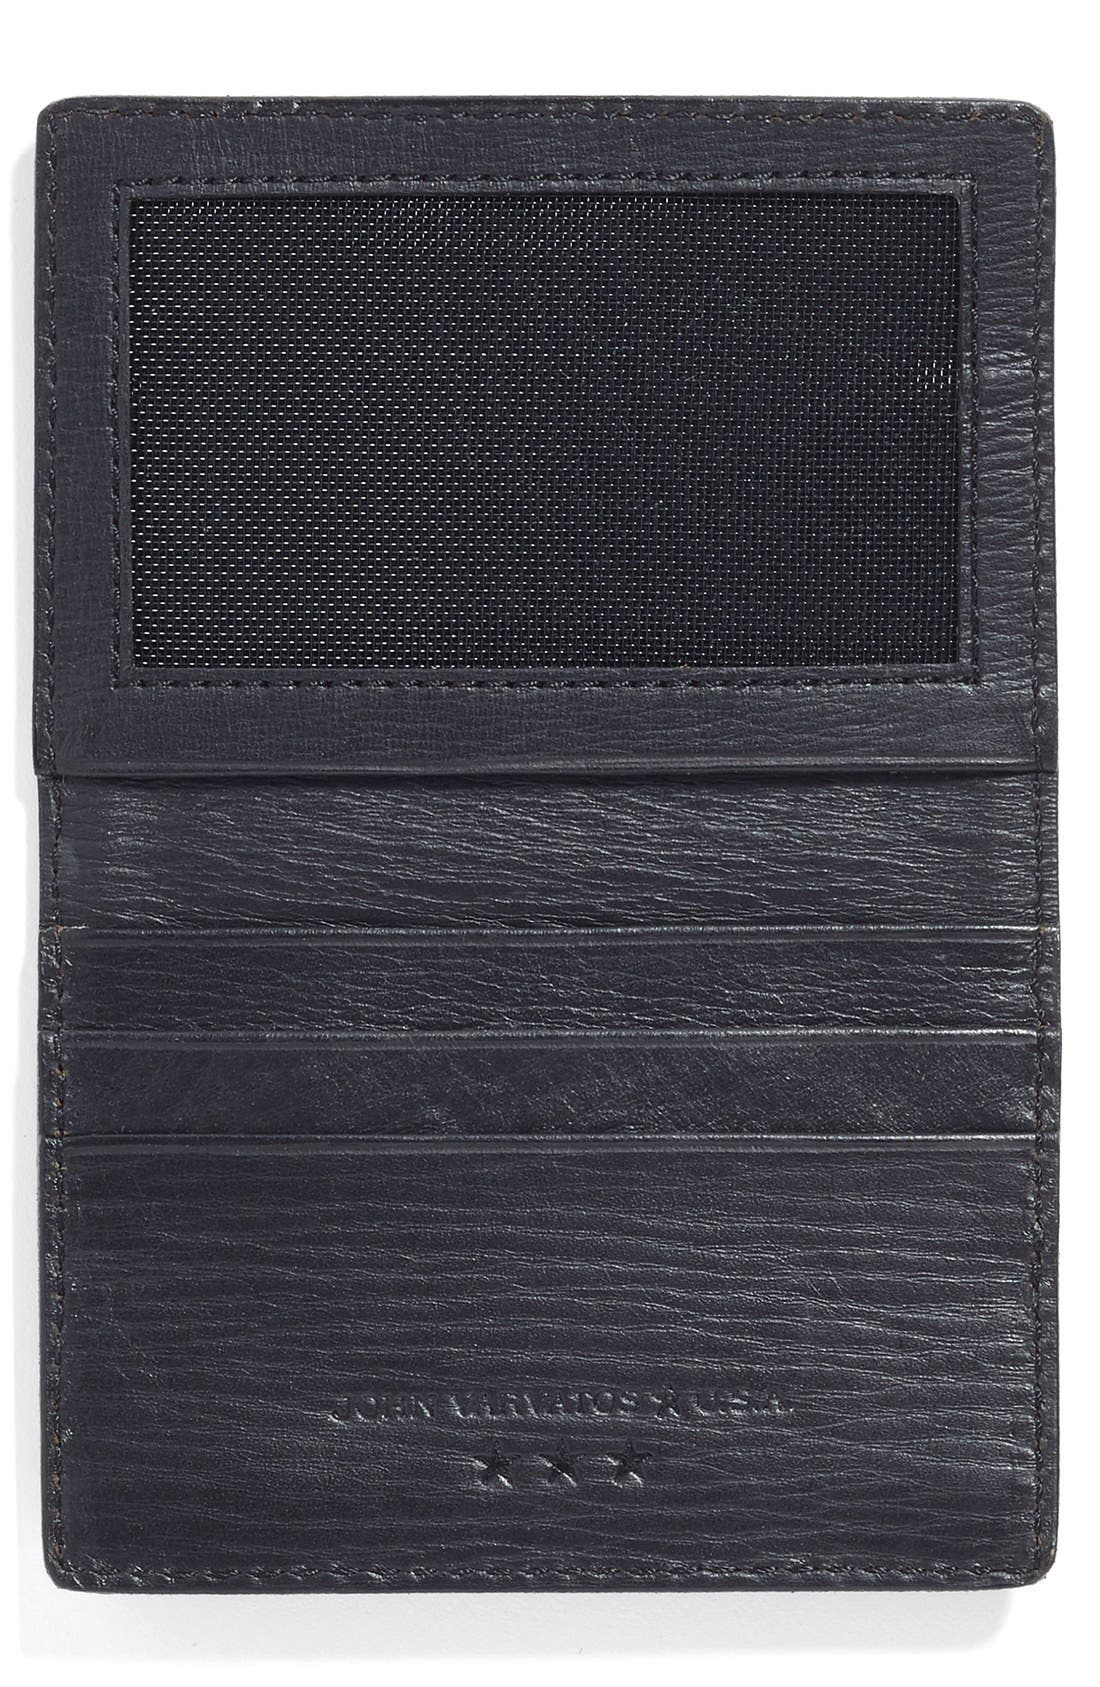 Collection Leather Card Case,                             Alternate thumbnail 3, color,                             001